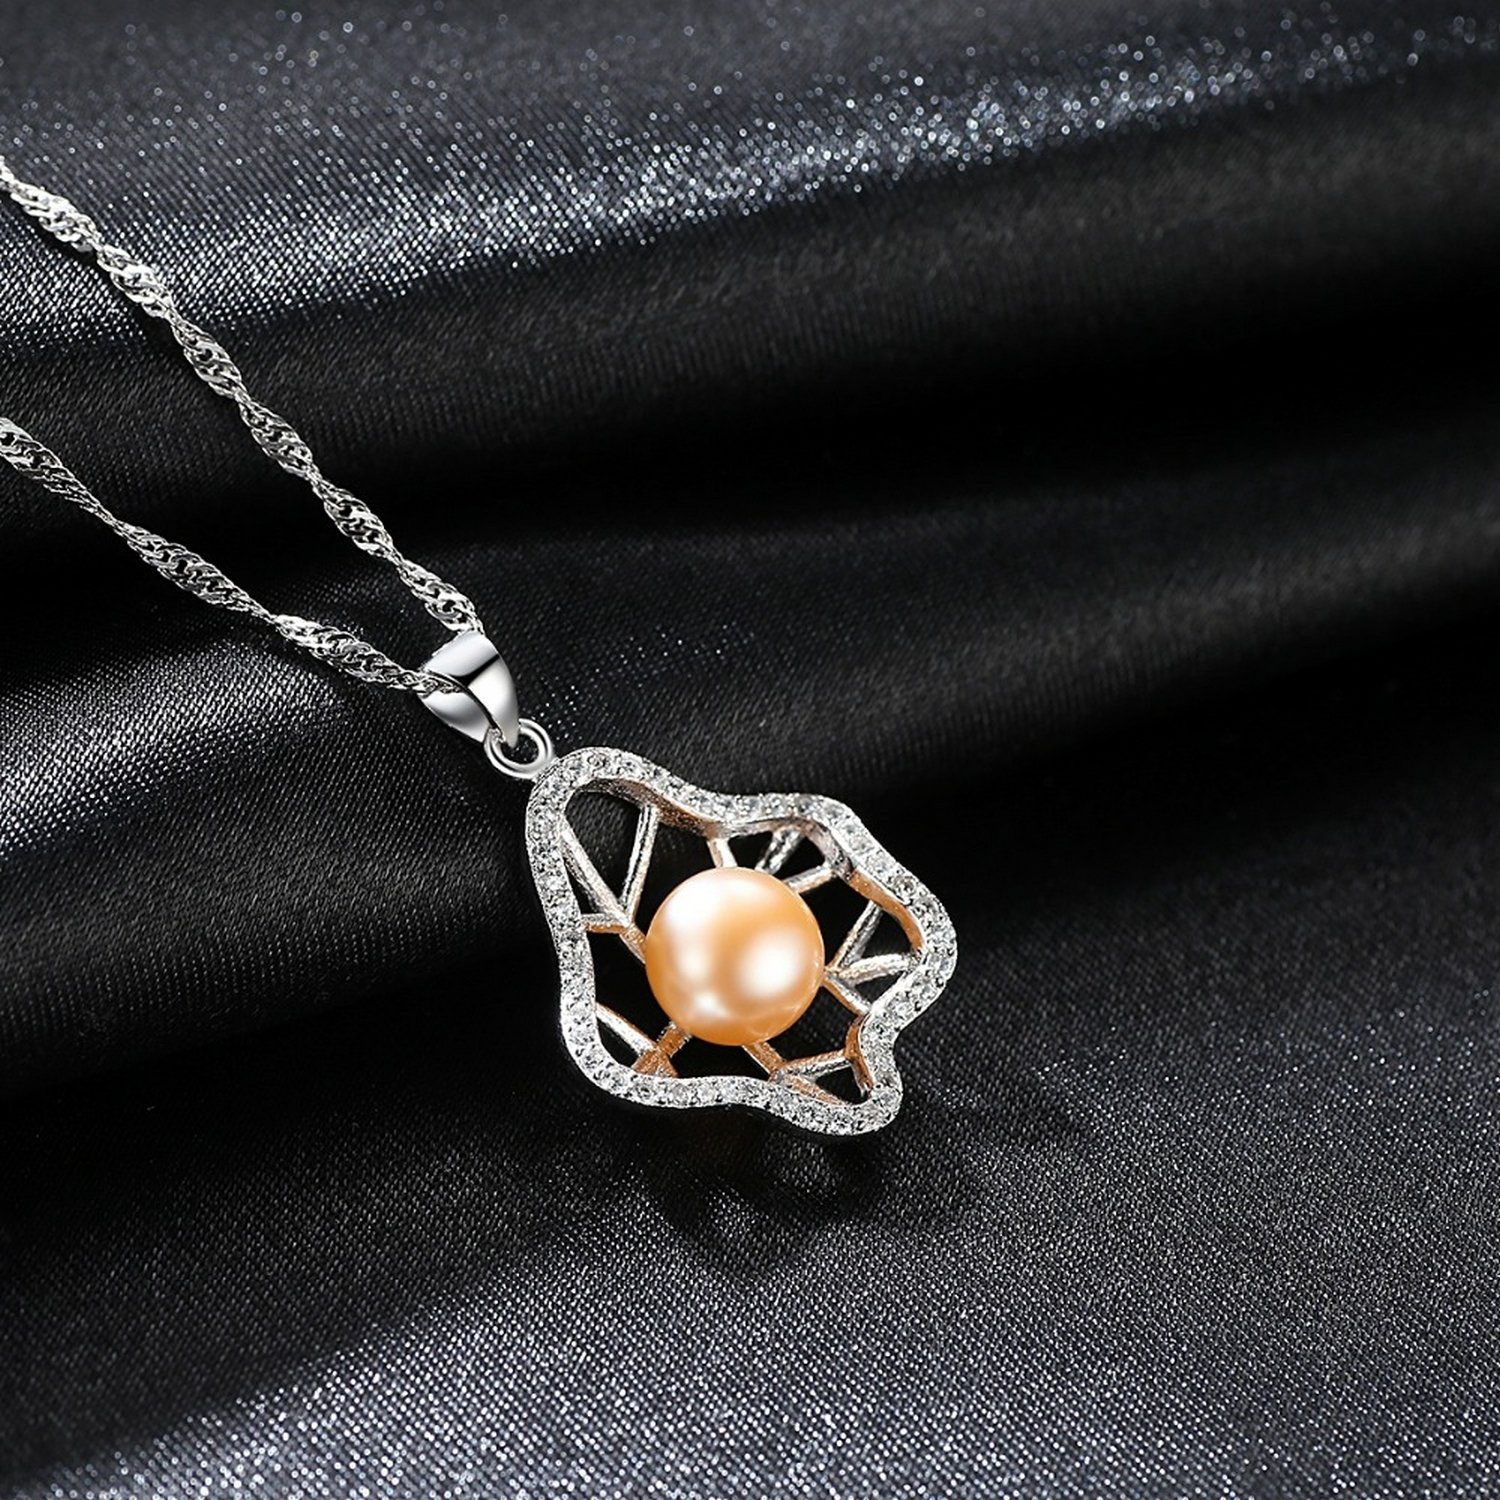 CS-DB Jewelry Silver Pearl Party Gift Chain Charm Pendants Necklaces